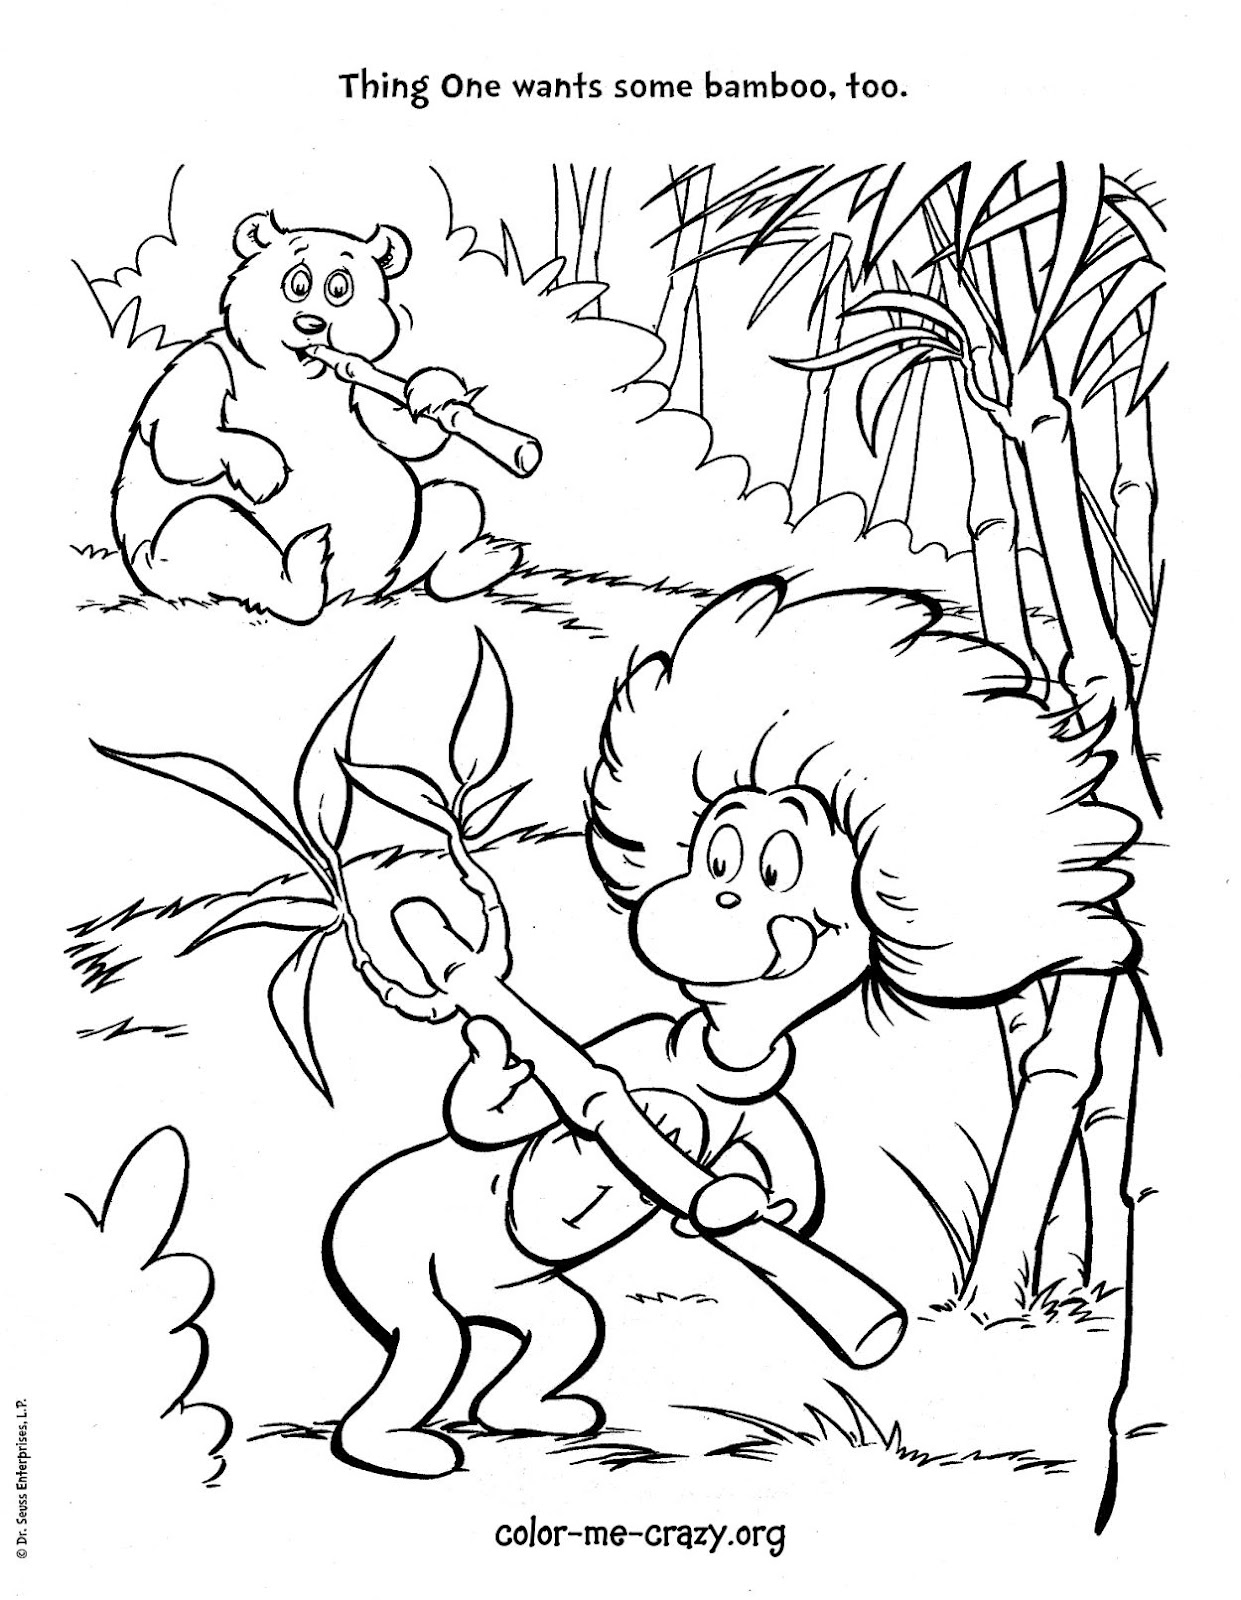 coloring pages cat in the hat colormecrazyorg the cat and the hat is back pages in hat cat coloring the